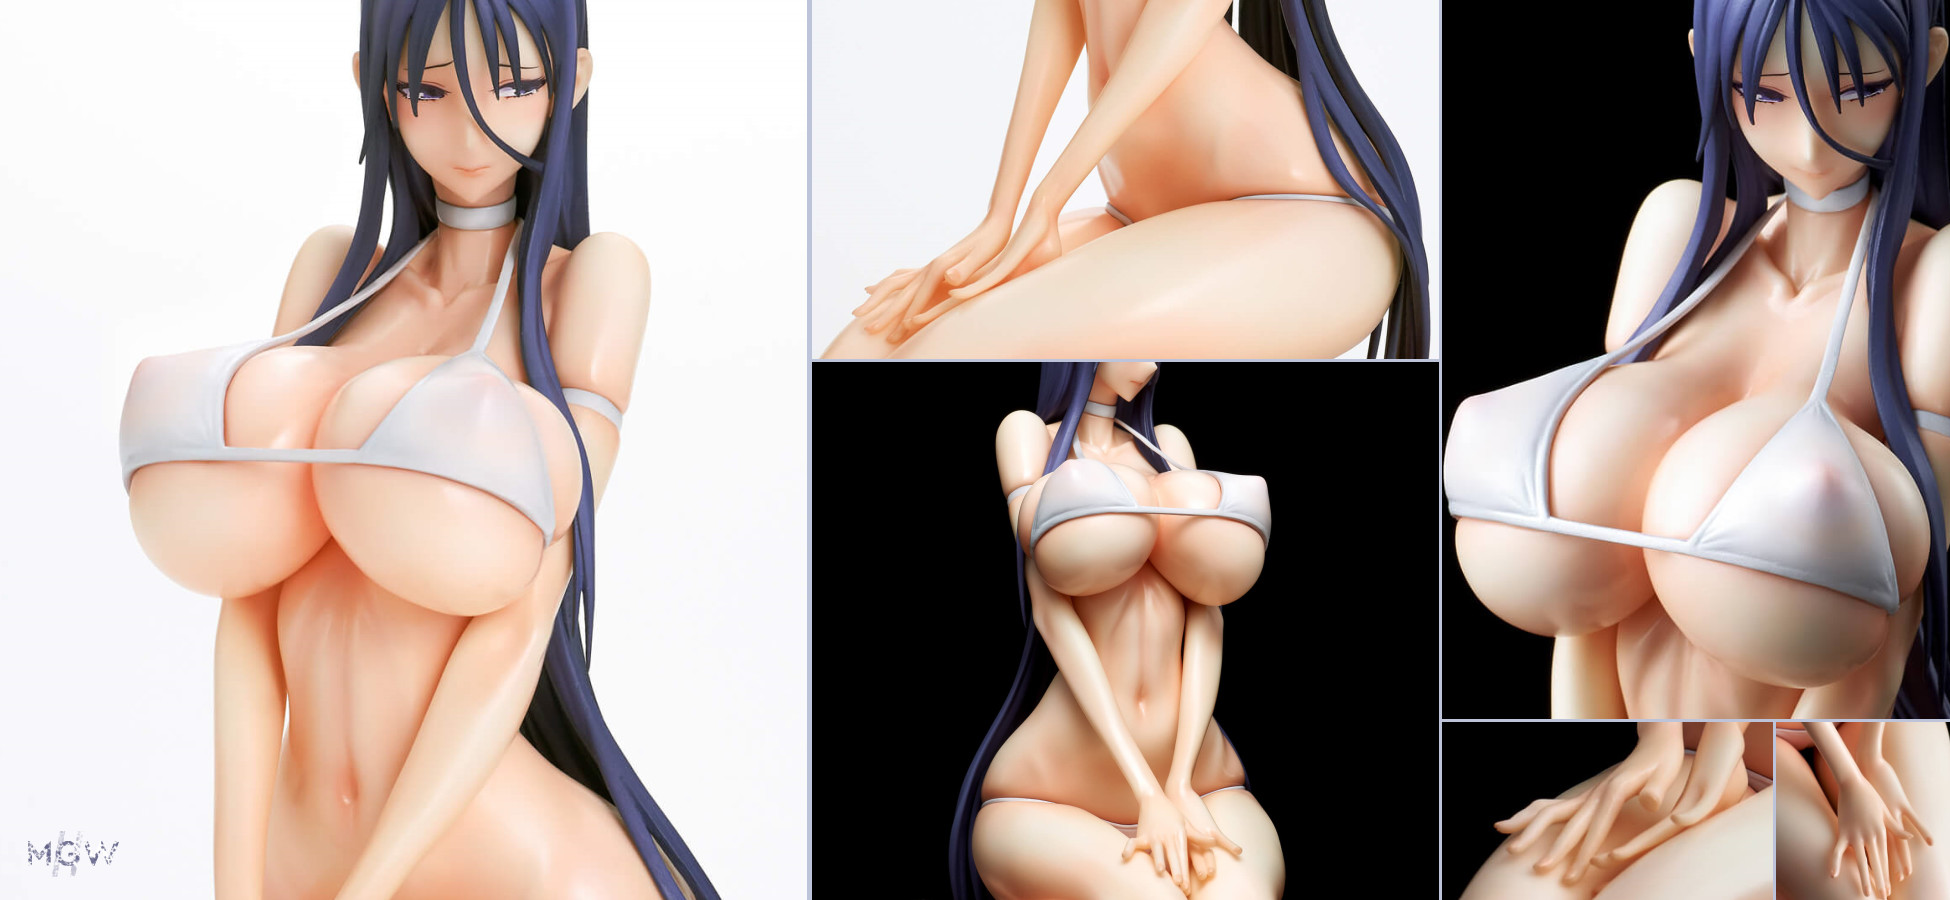 Misa nee White bikini ver. by Q six from Mahou Shoujo by RAITA MGW Anime Figure Pre order Guide